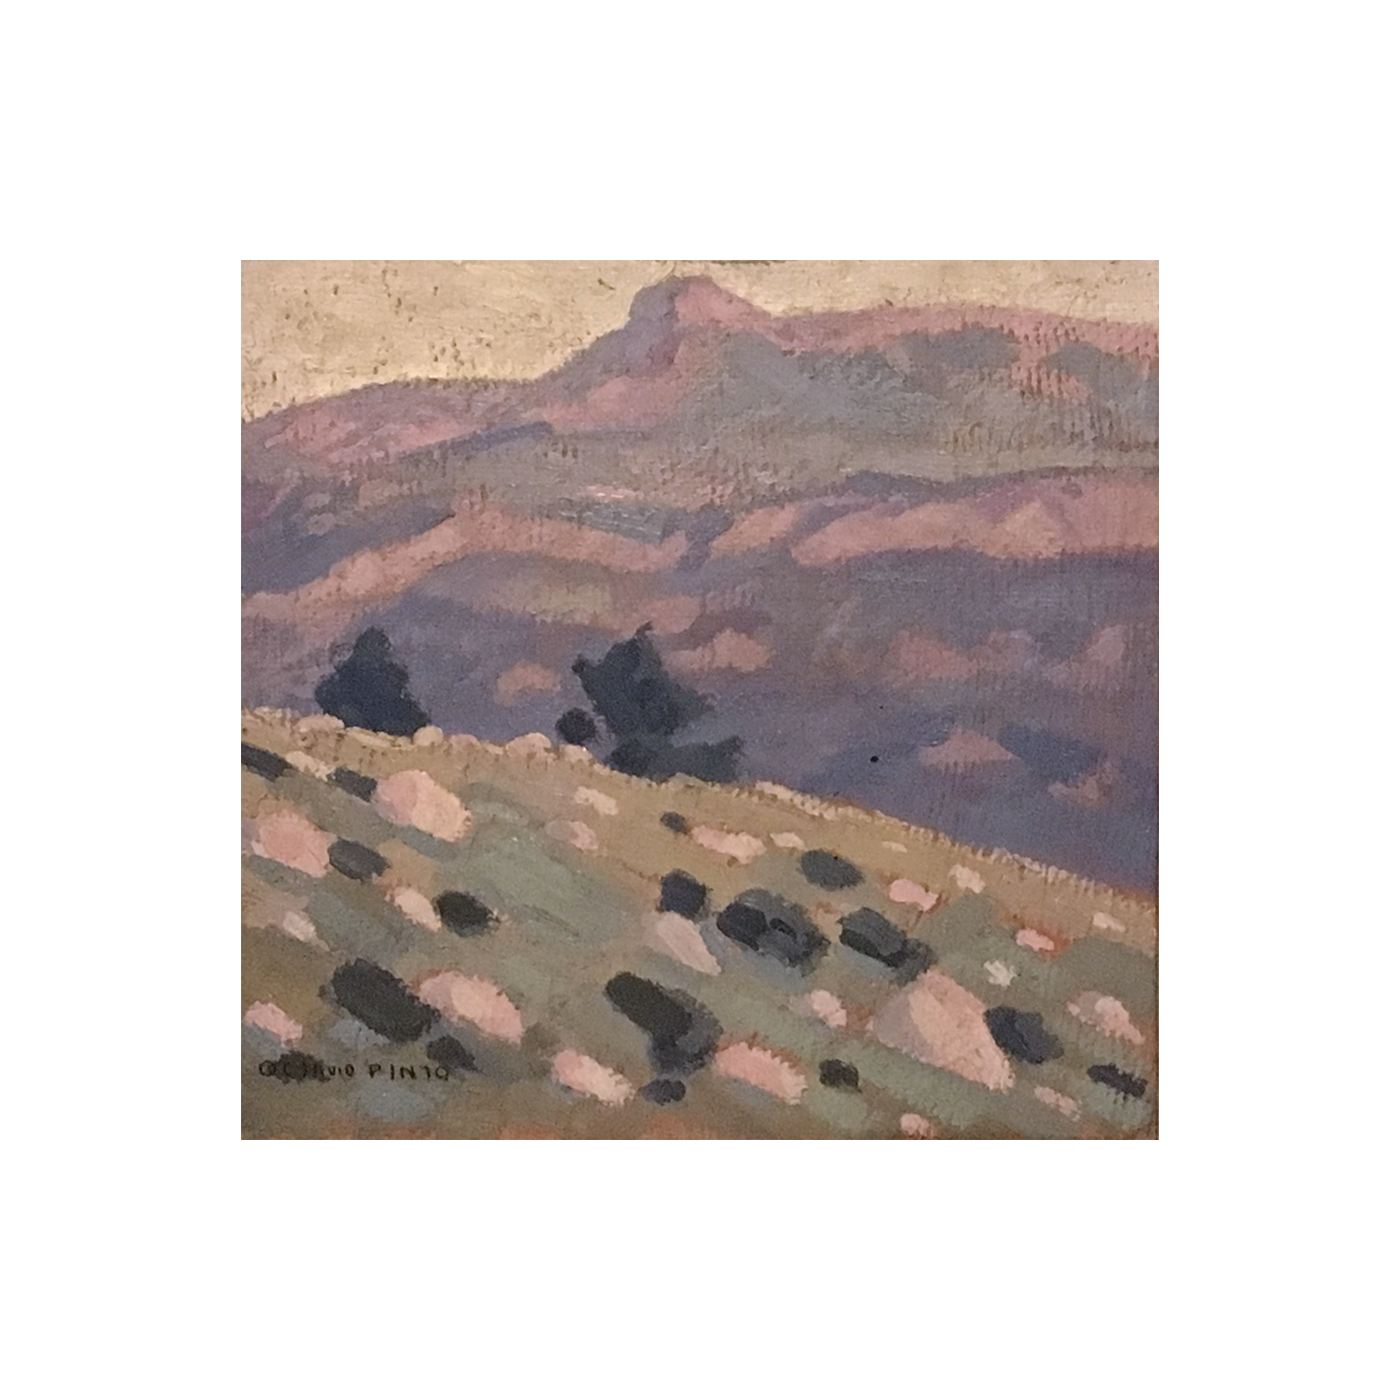 """Octavio Pinto [ 1890 - 1941] Argentina painting """"Landscape in the wilderness"""" ca 1920"""